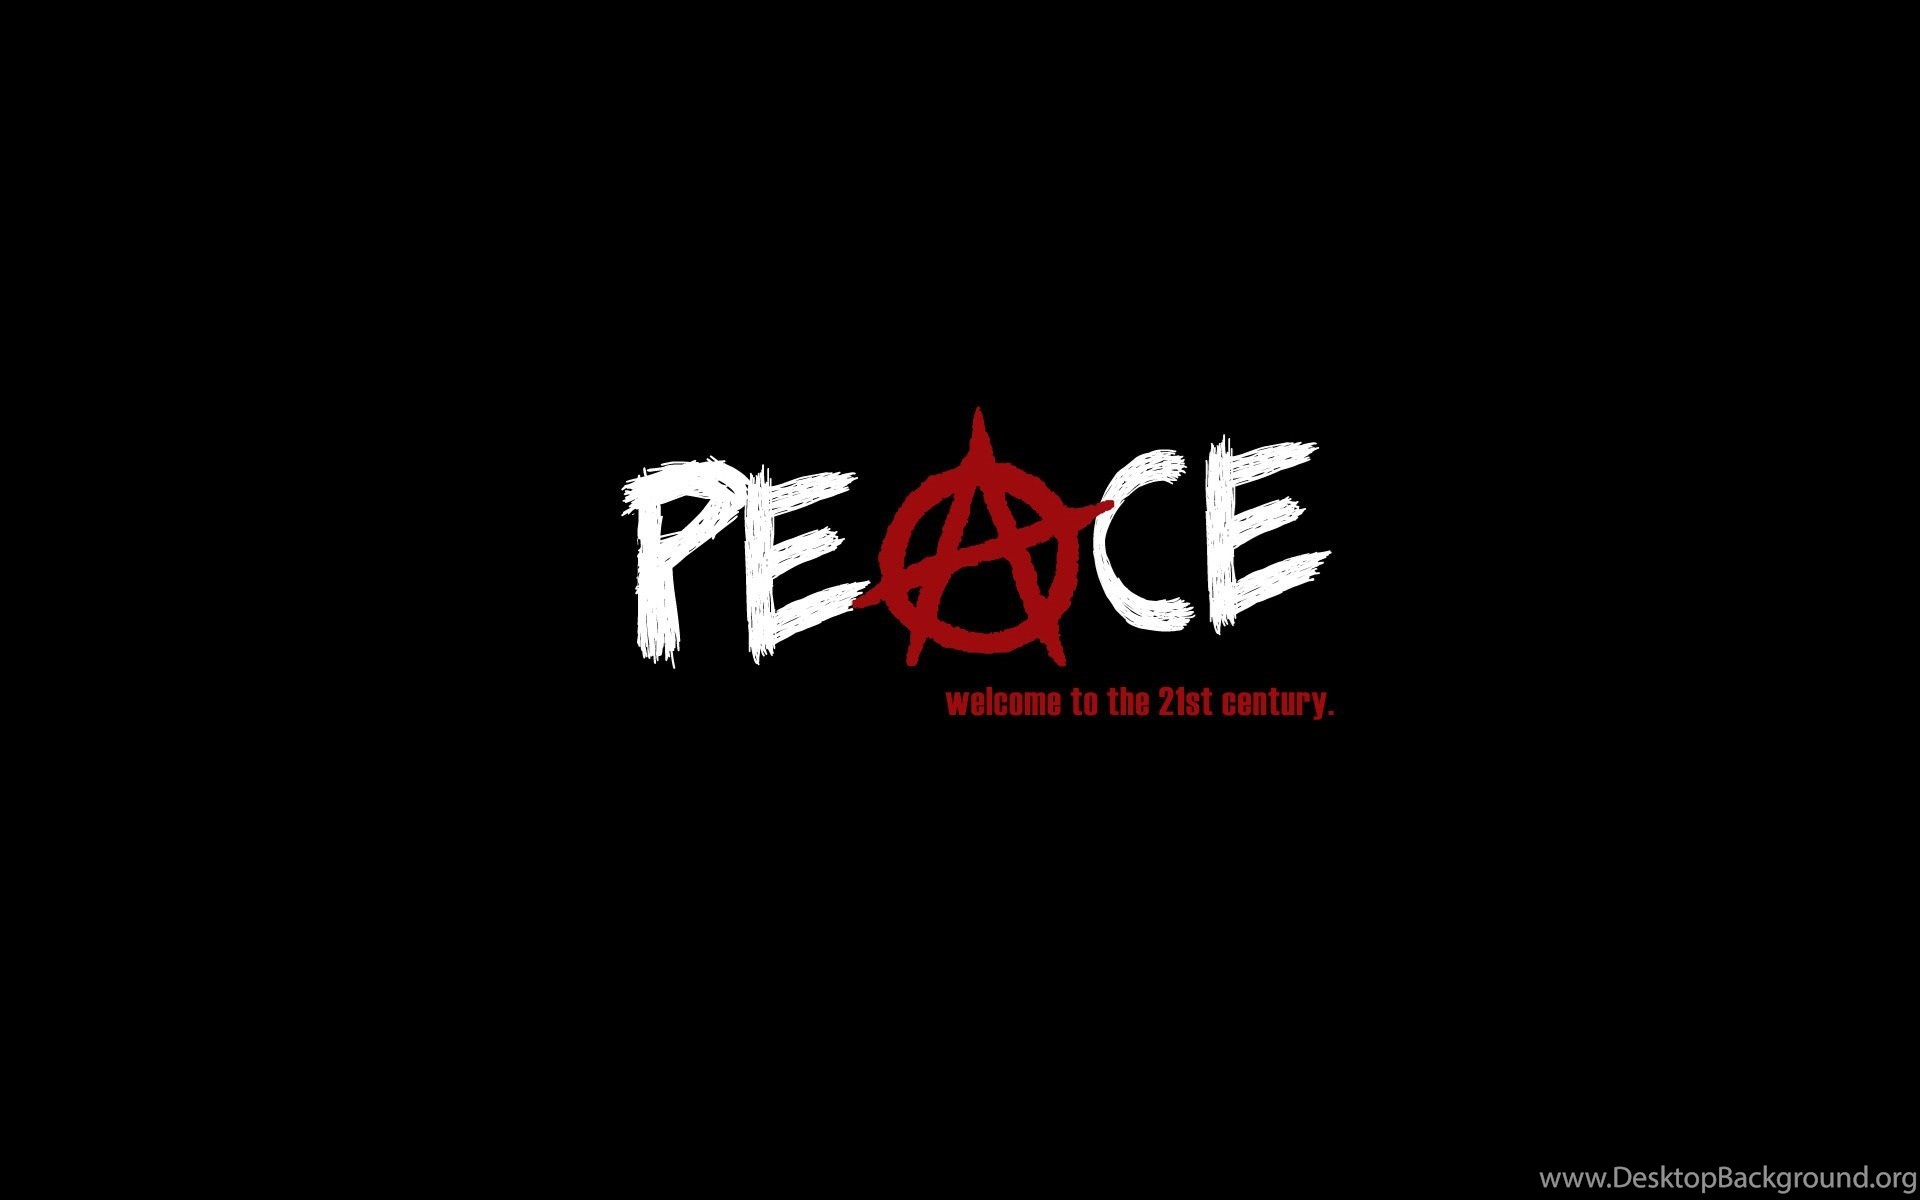 peace wallpapers hd pictures desktop background